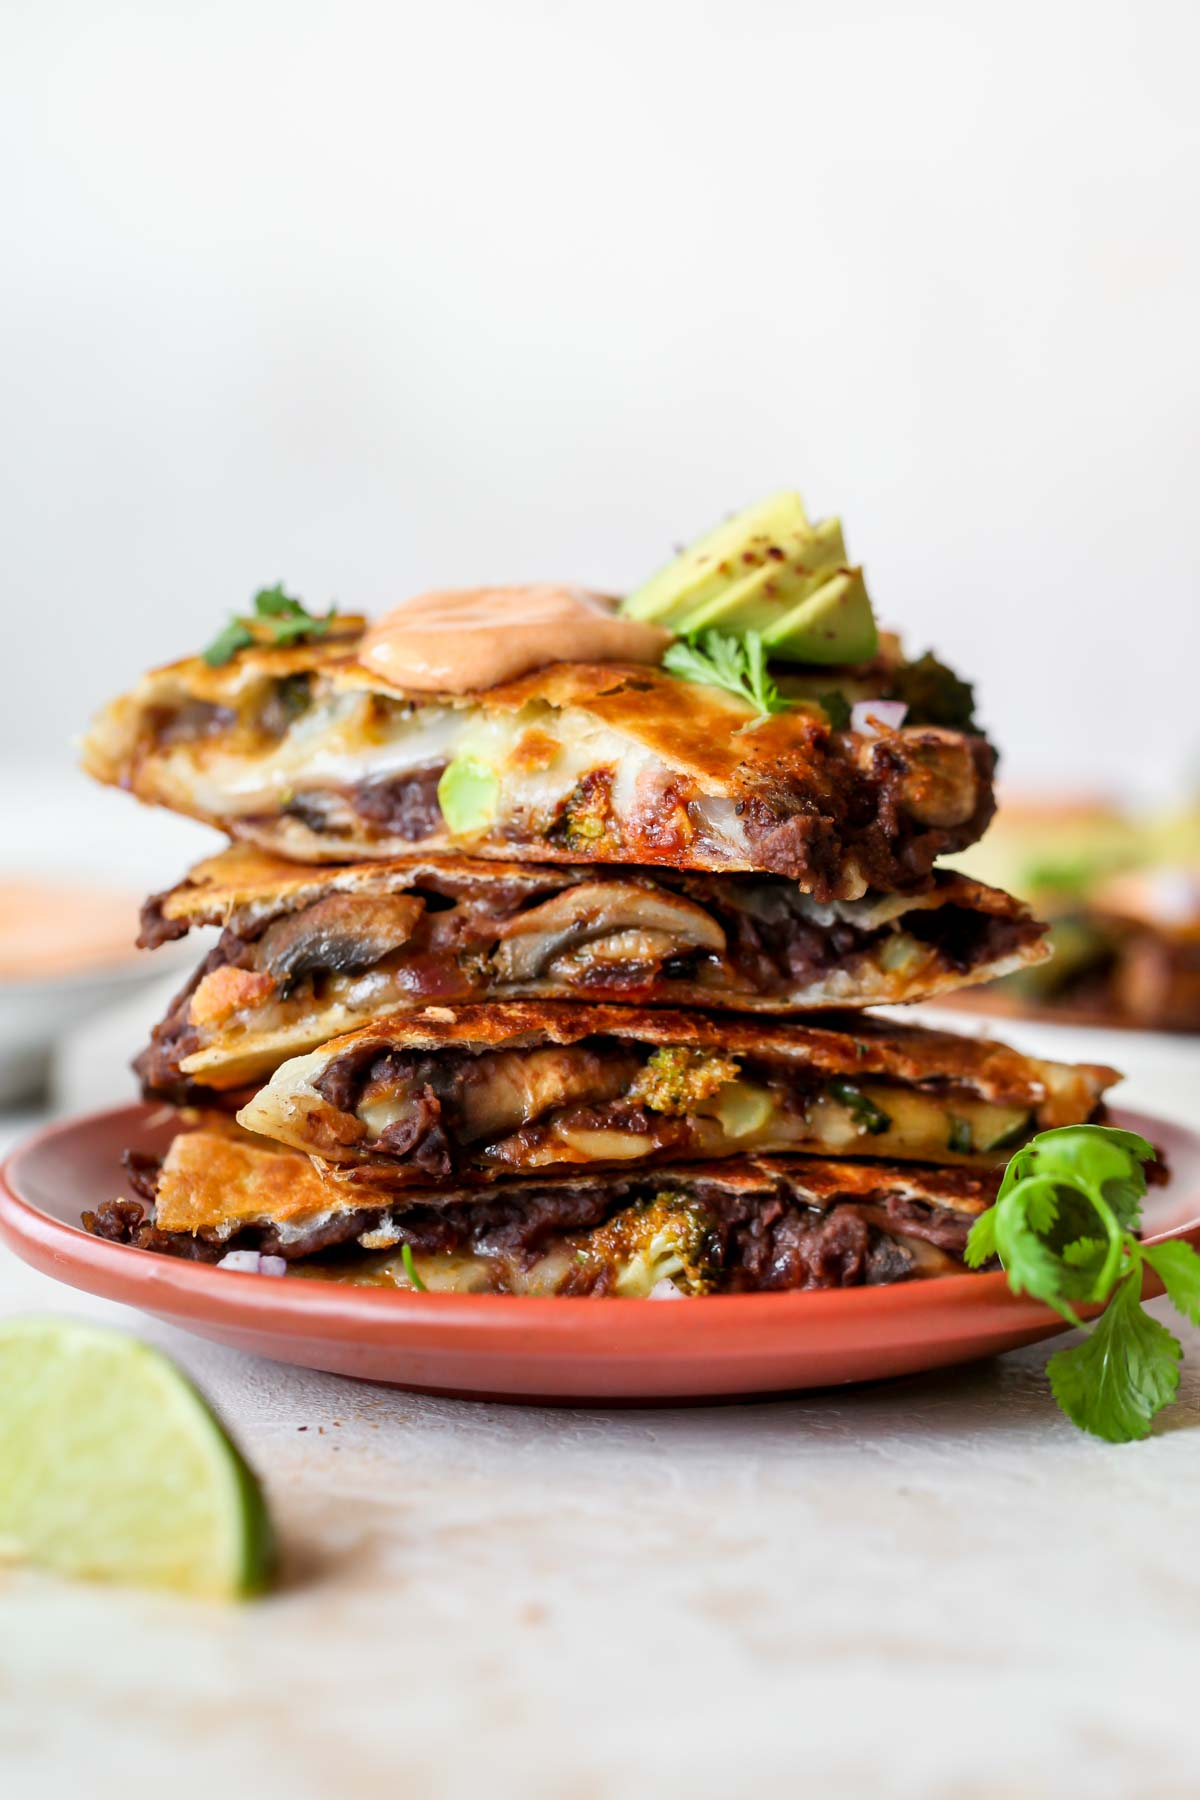 A stack of veggie quesadillas layered on a plate